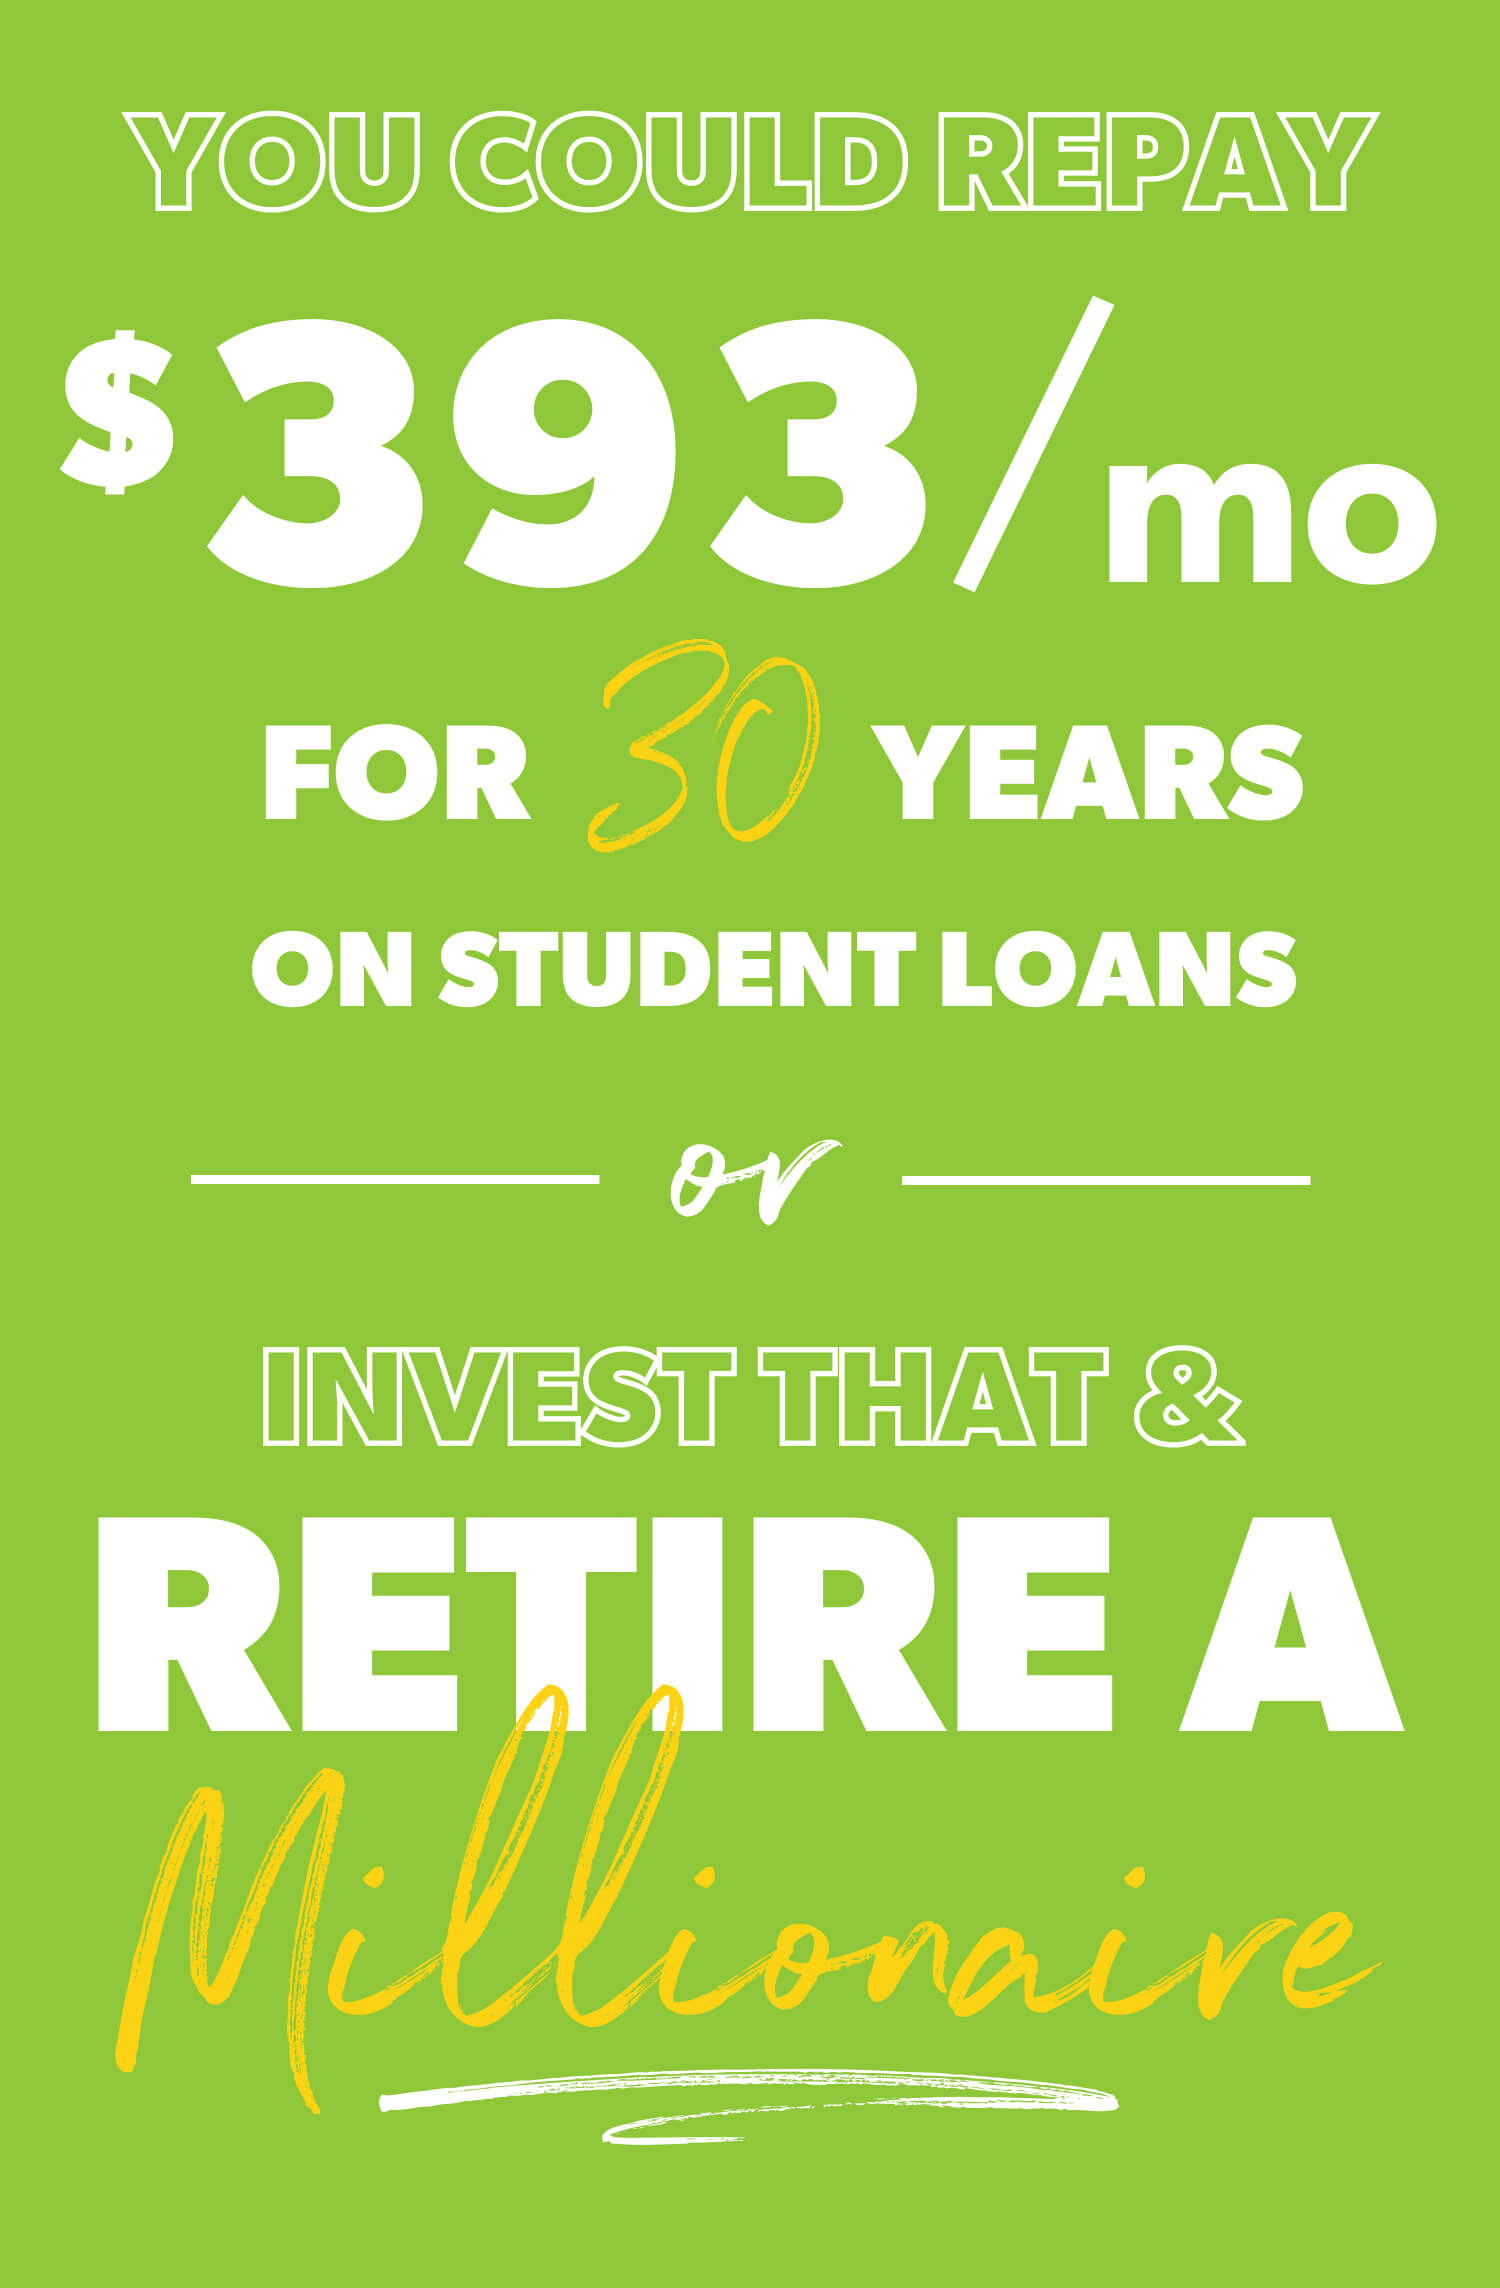 You could repay $393 a month for 30 years on student loans or invest that and retire a millionaire.